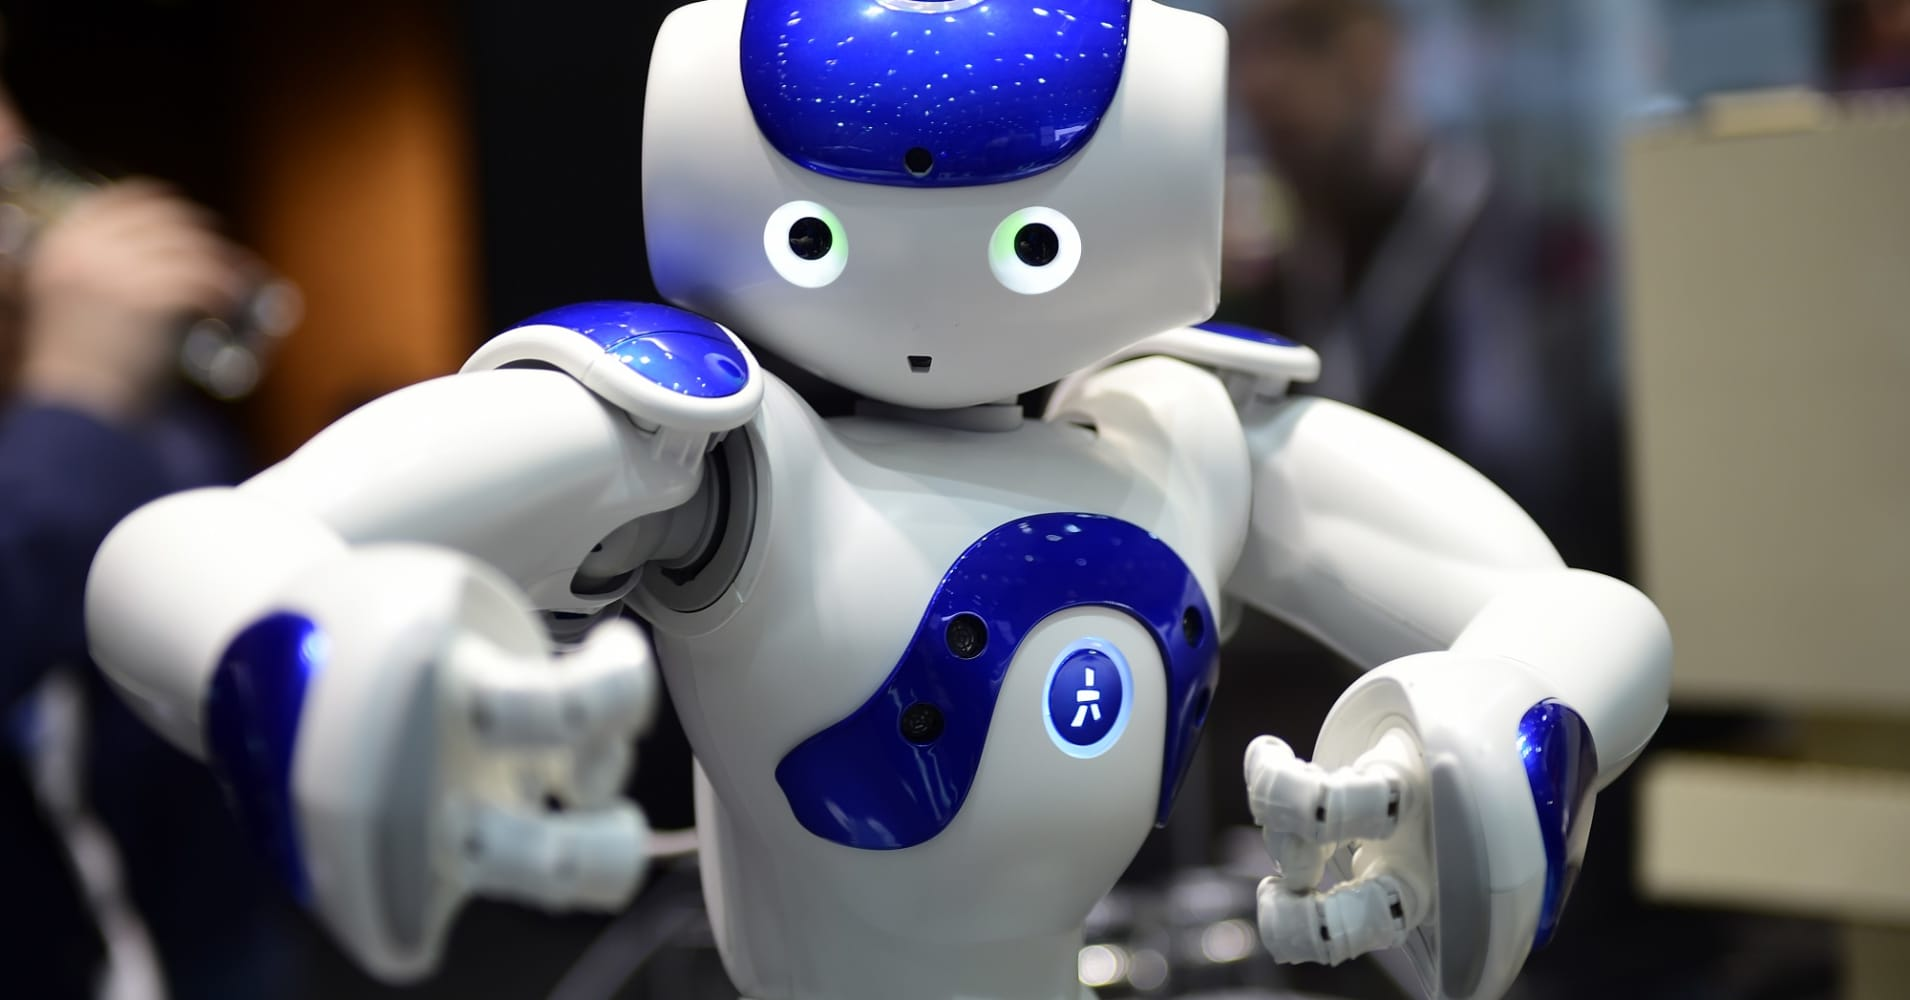 The robot 'Nao' performs Tai Chi in Hanover, Germany.